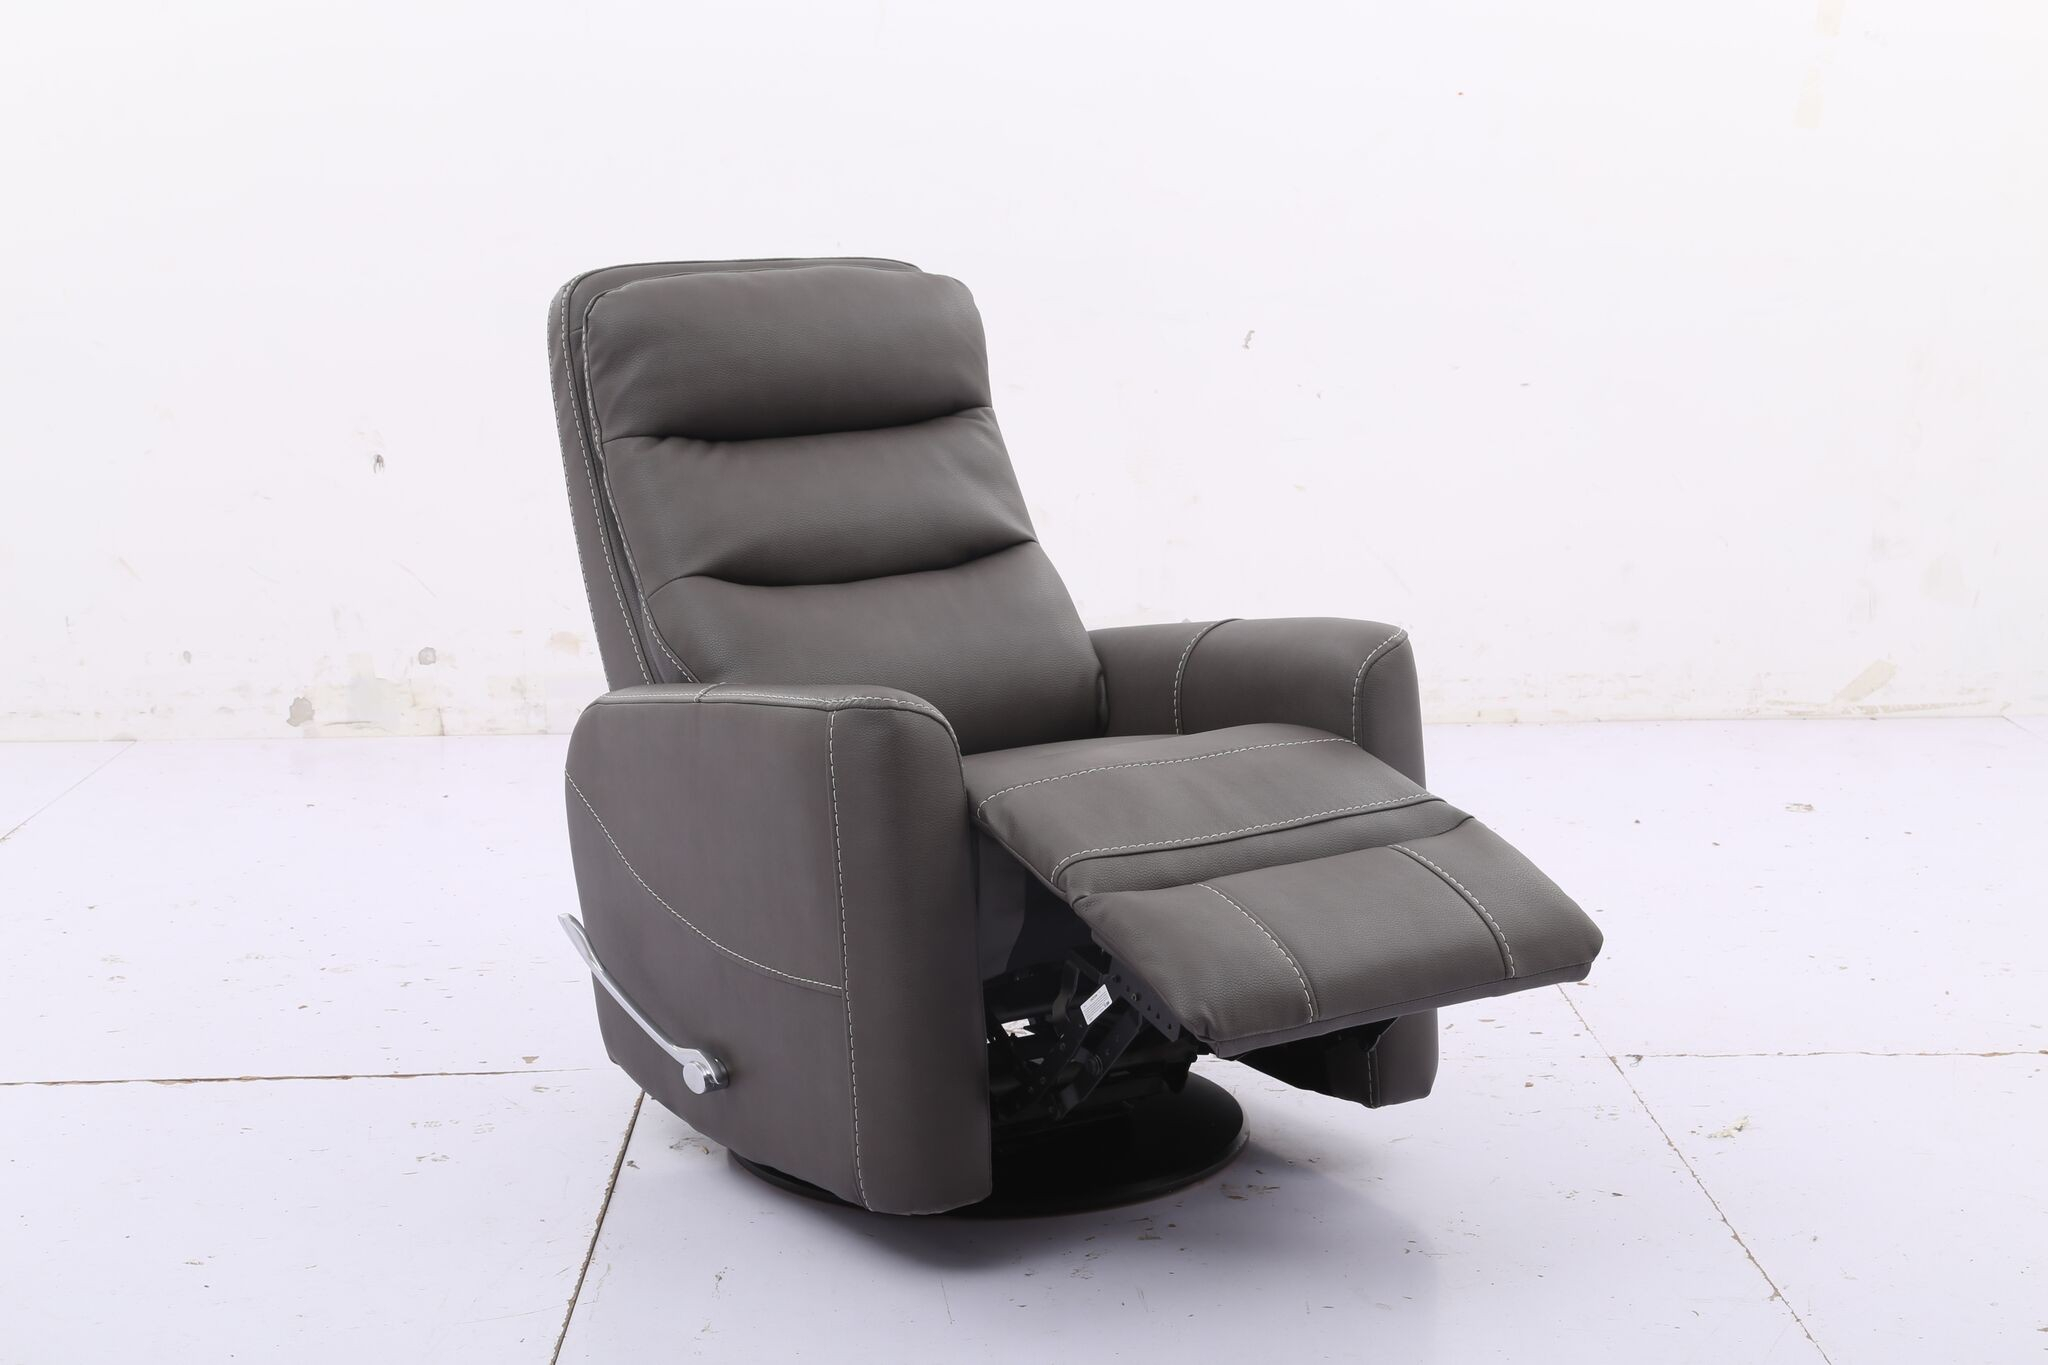 Hercules  Haze  Swivel Glider Recliner With Articulating Headrest With Regard To Hercules Oyster Swivel Glider Recliners (Image 8 of 20)